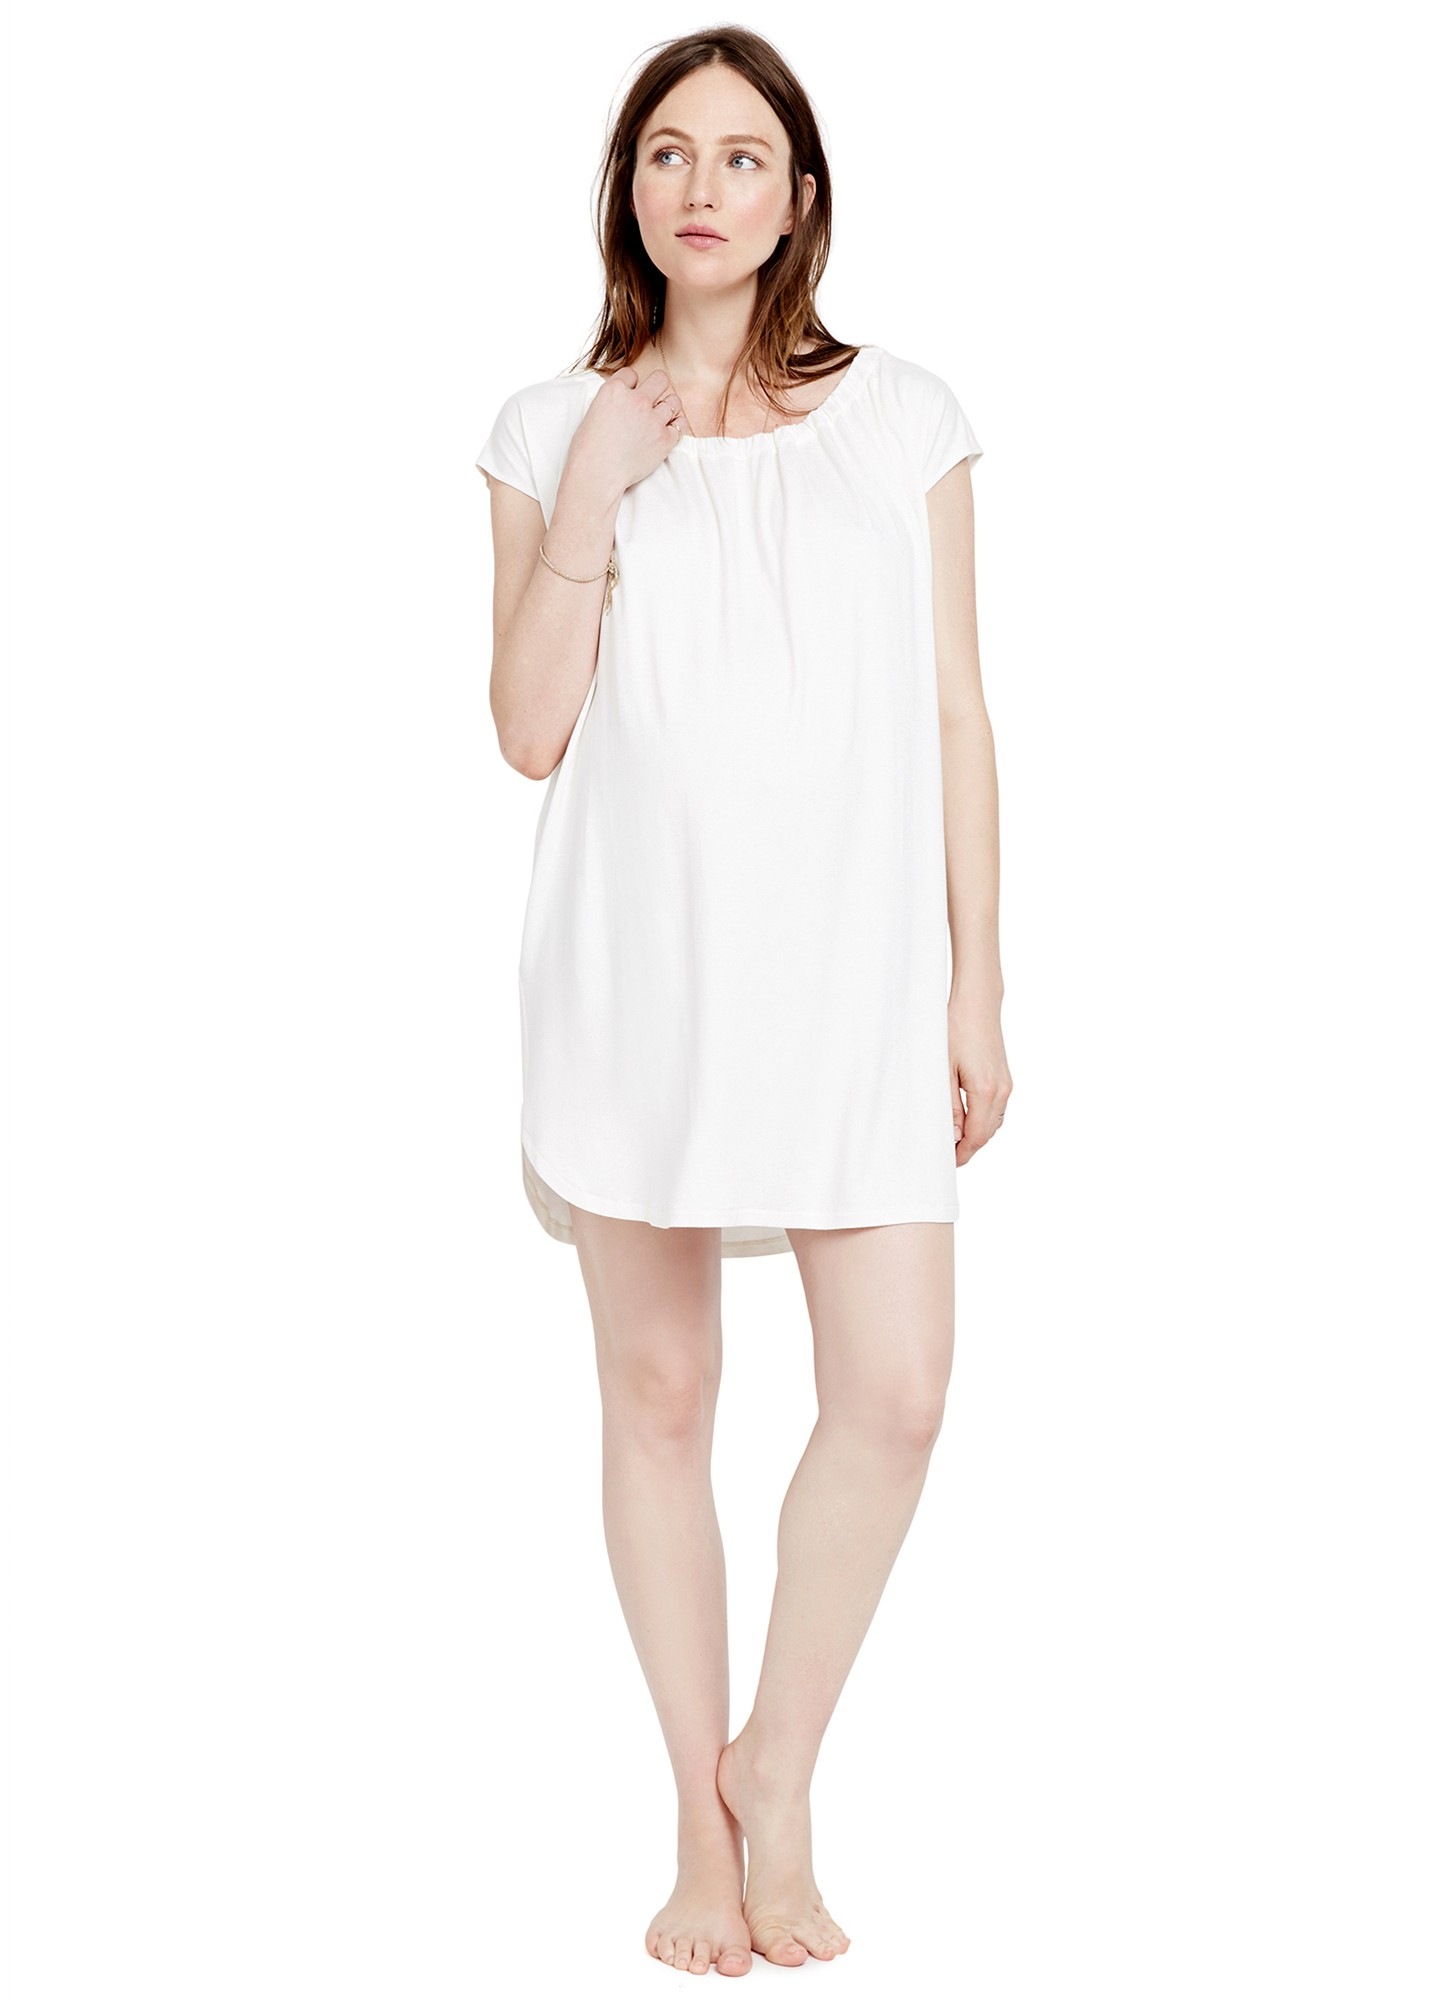 nightgown 209 zjhthor